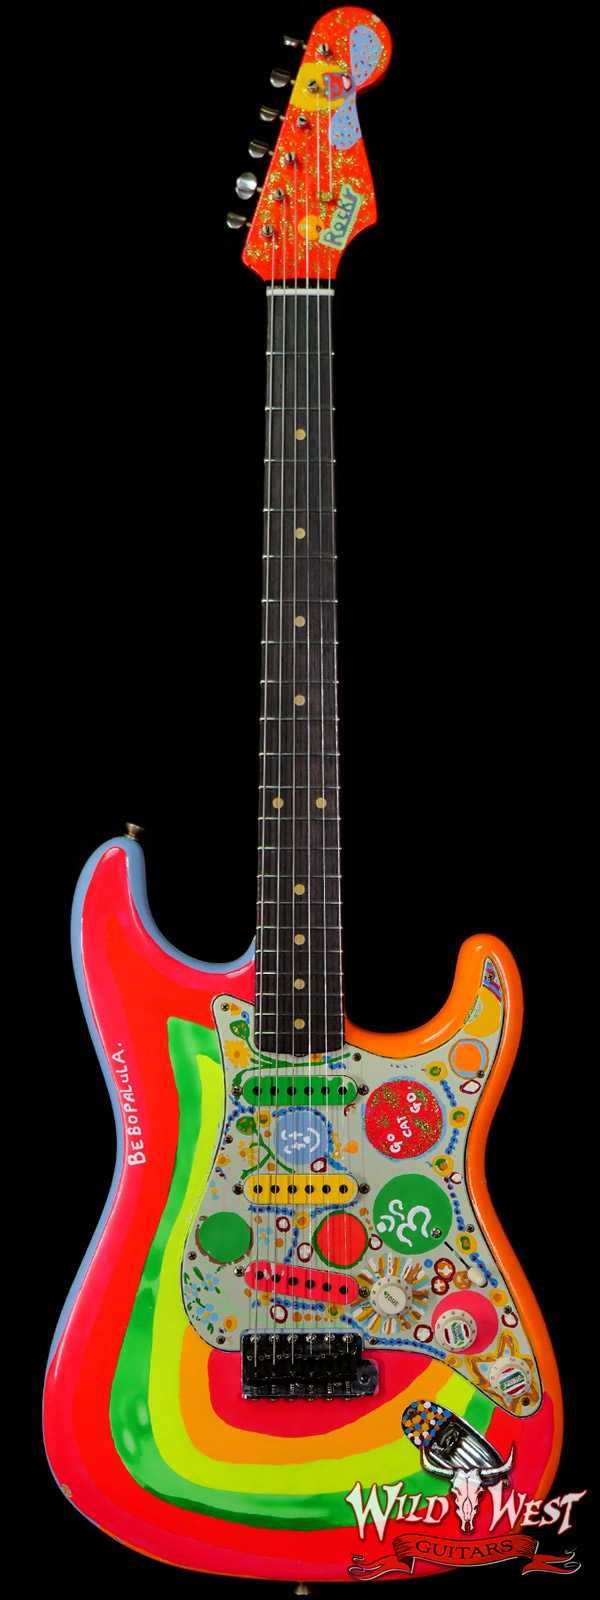 Fender Custom Shop Limited Editon George Harrison Rocky Strat Stratocaster Masterbuilt by Paul Waller Painted by Pamelina H.